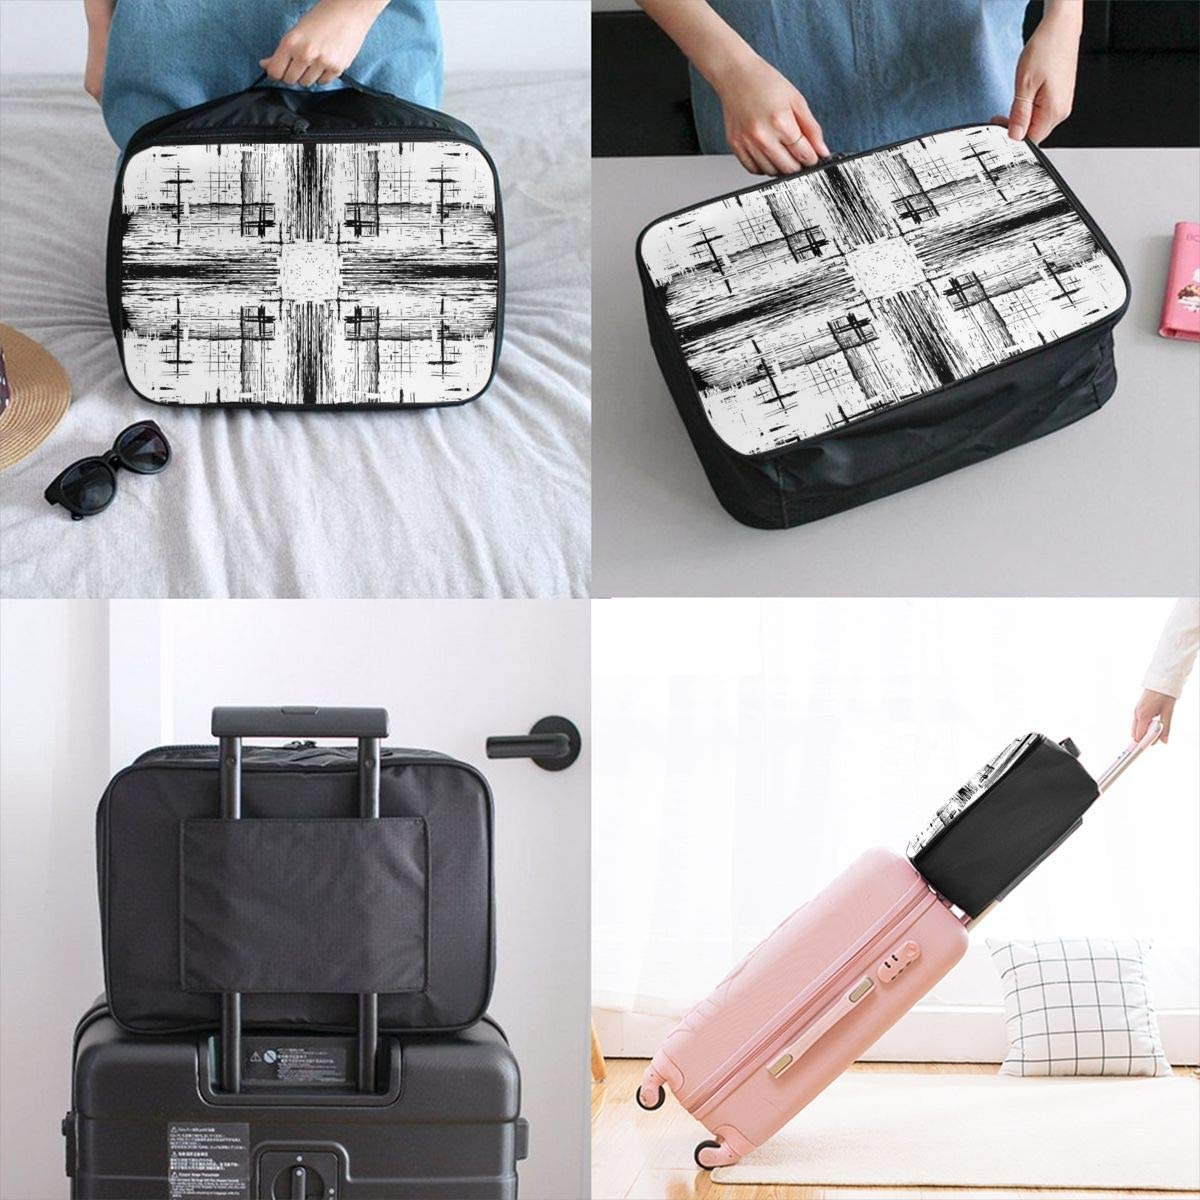 Yunshm Scrambled Lines And Textures Personalized Trolley Handbag Waterproof Unisex Large Capacity For Business Travel Storage